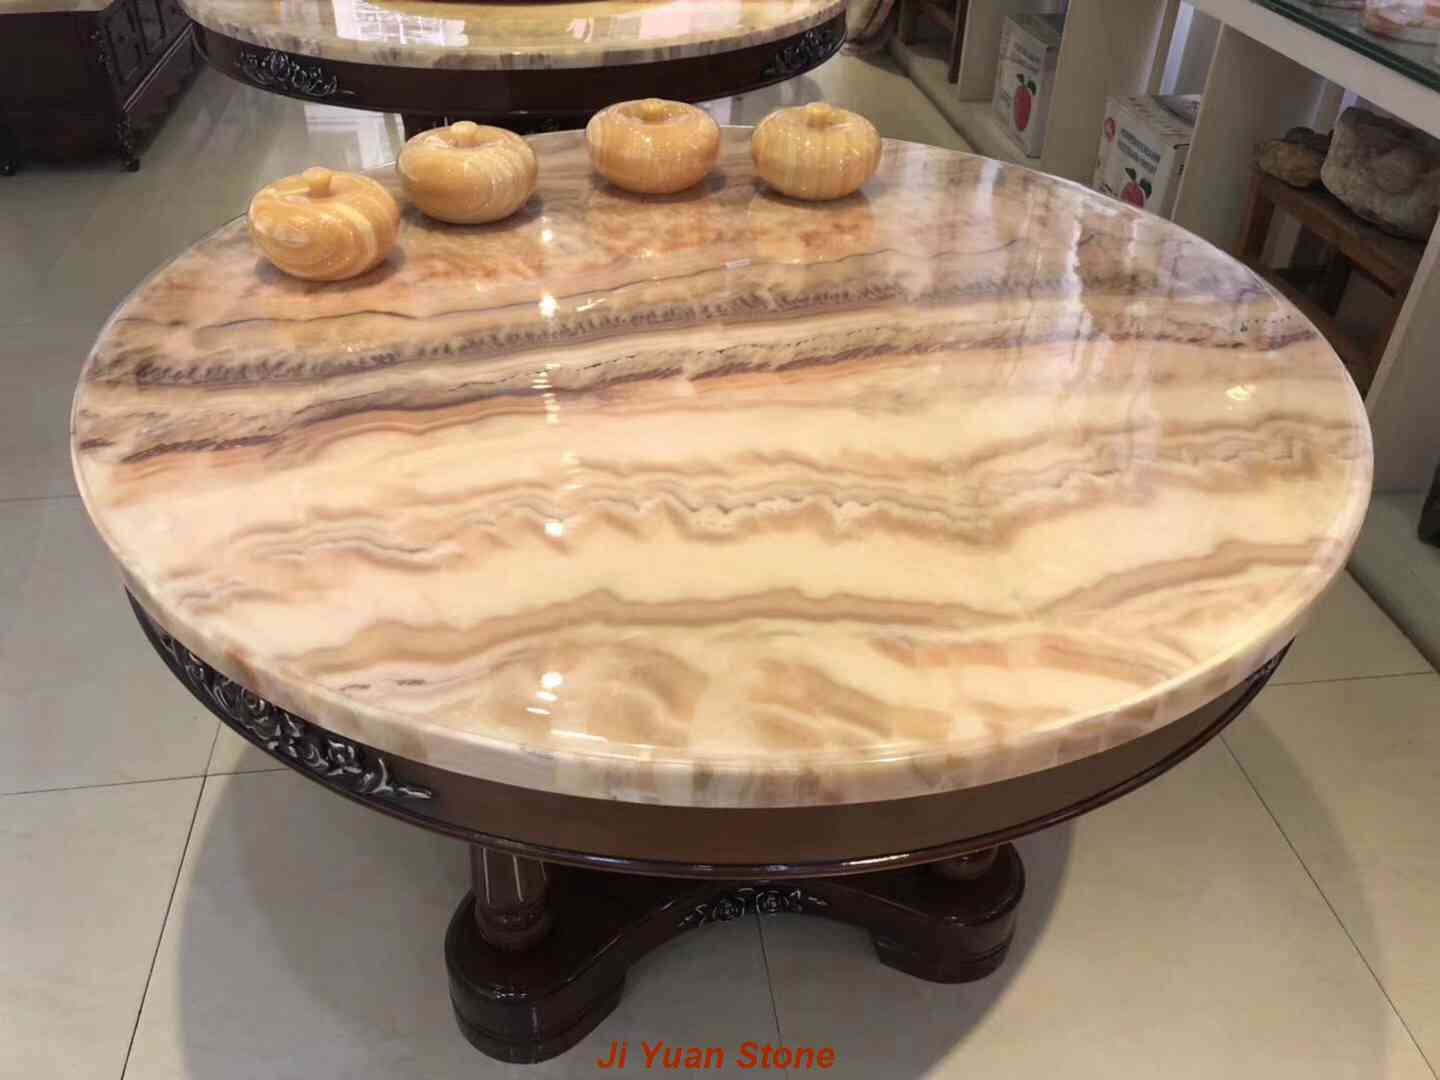 Faux Marble Top Dining Table Set Quartz Top Dining Table How To Clean Marble Table Marble Circle Table Marble And Wood Coffee Table Black Marble Round Dining Table